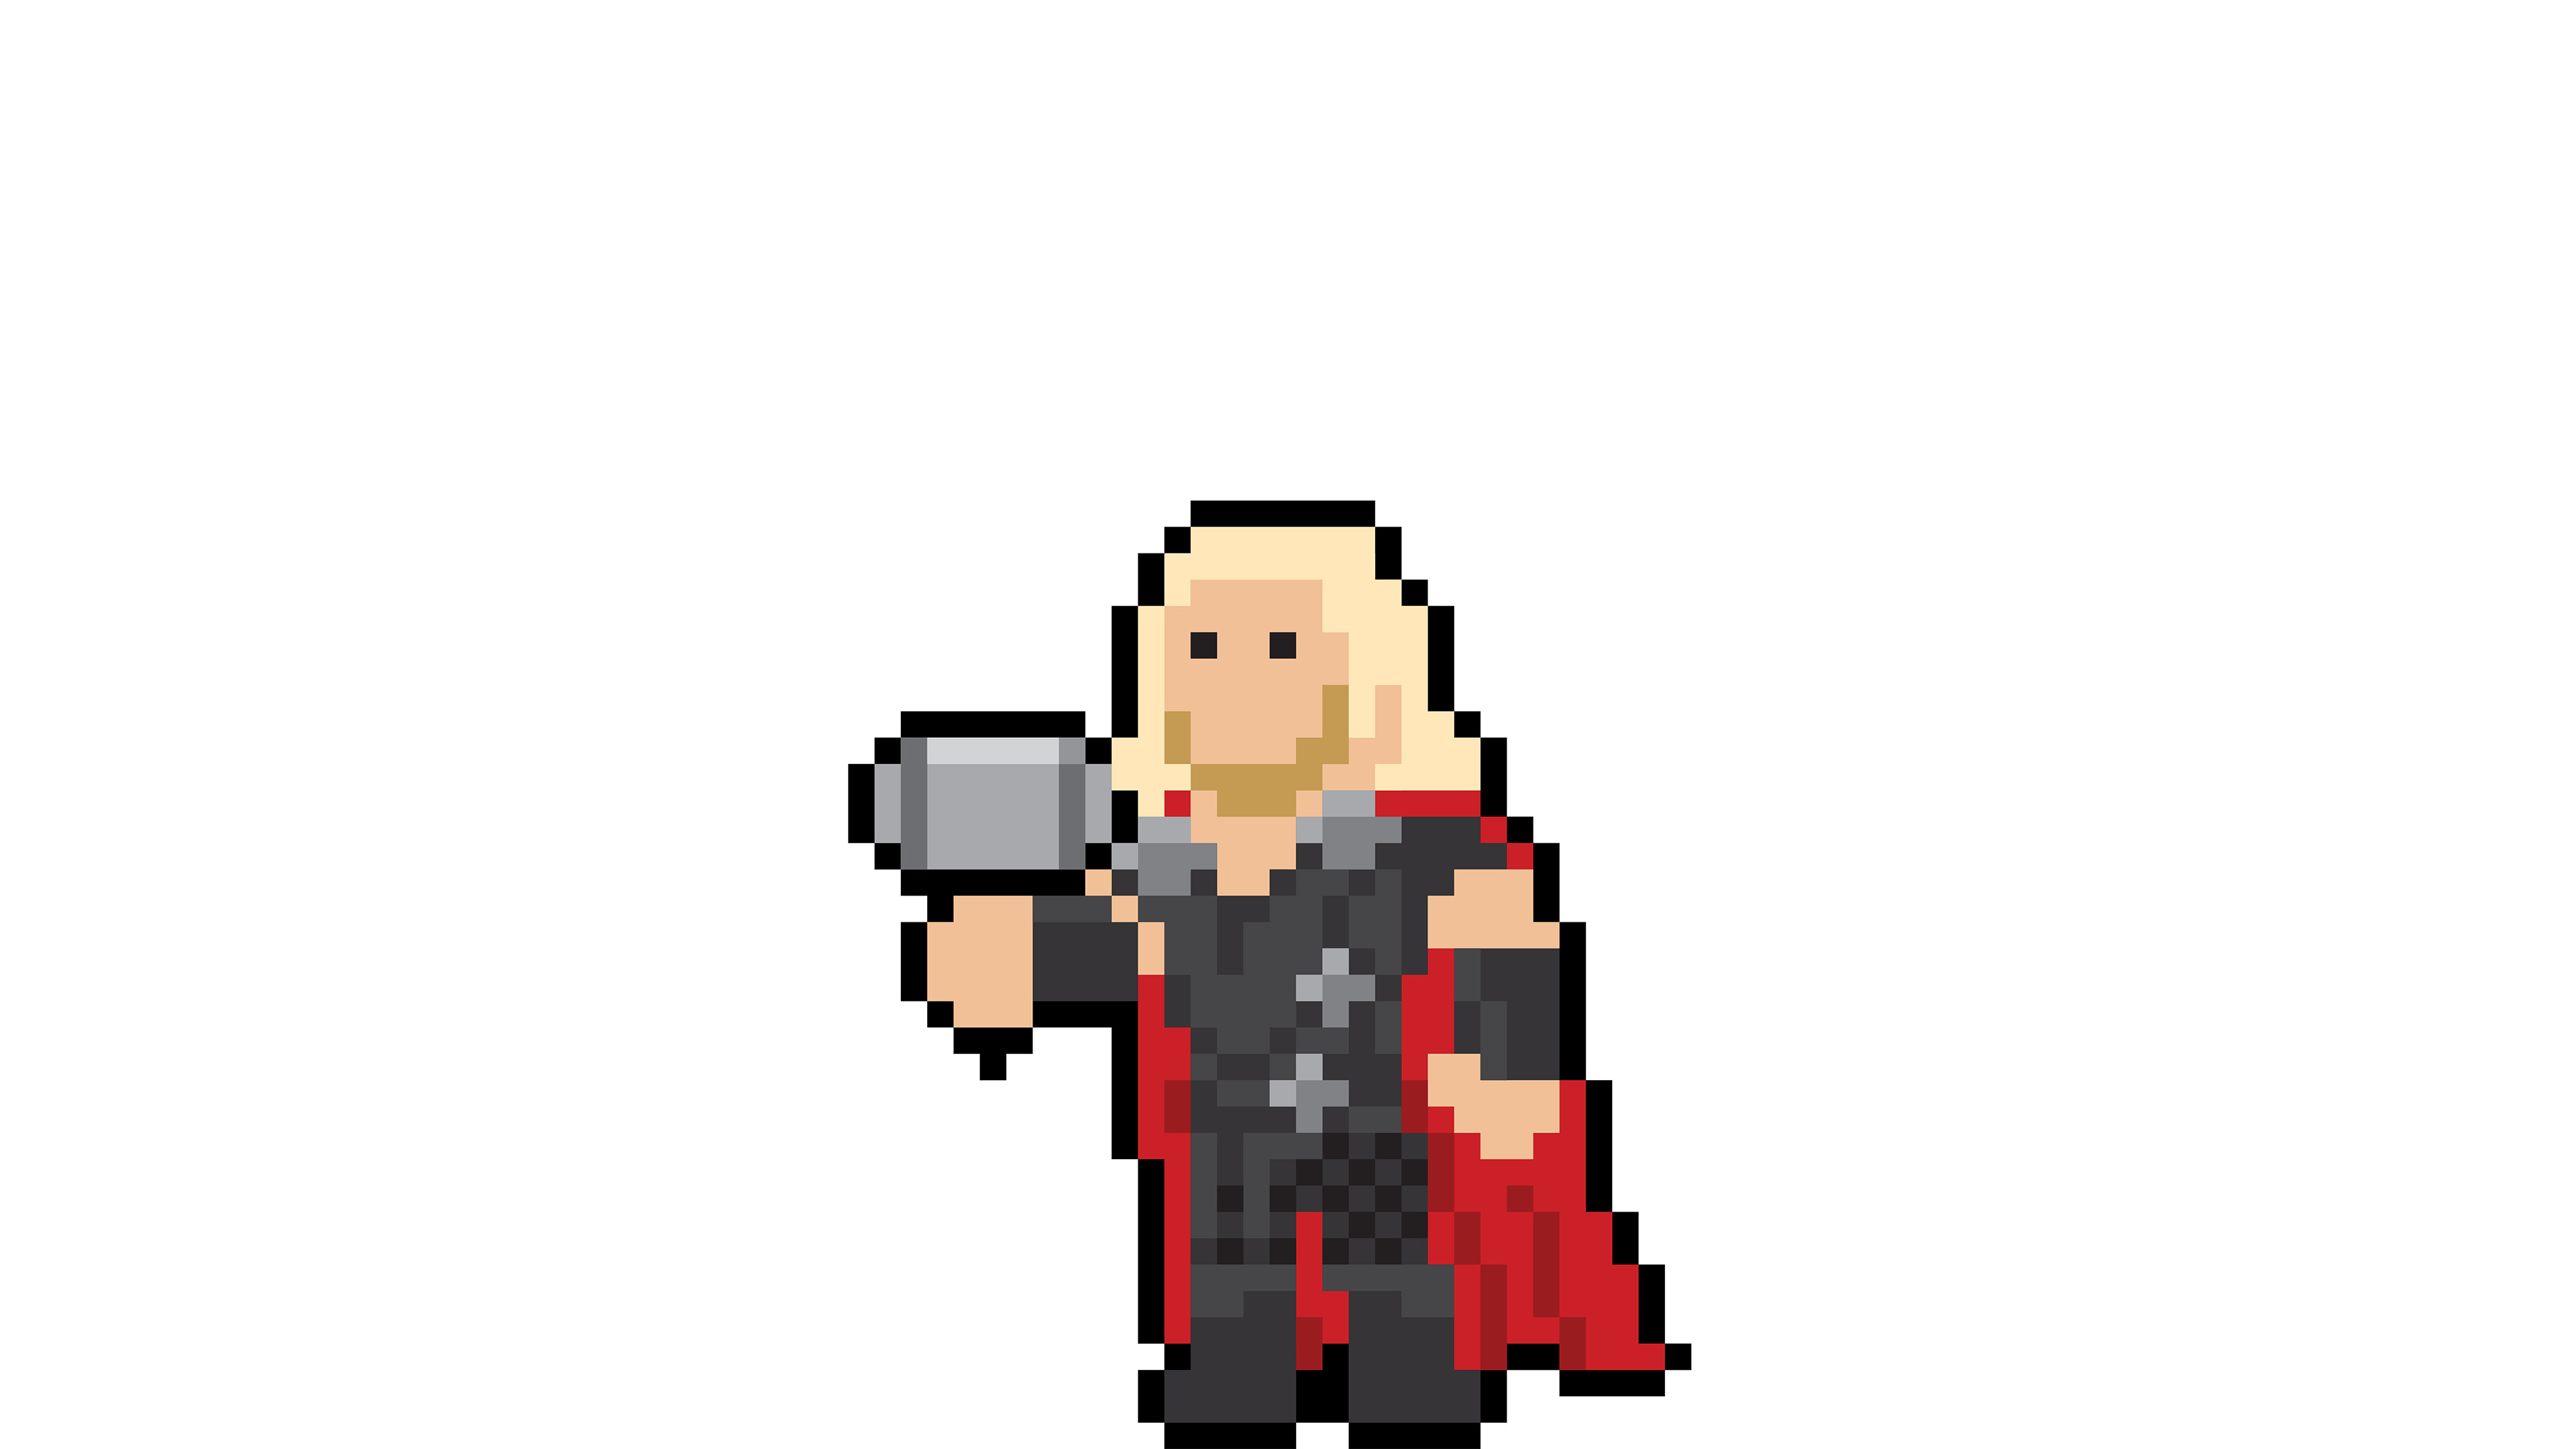 thor pixel art 1536522420 - Thor Pixel Art - thor wallpapers, superheroes wallpapers, pixel wallpapers, hd-wallpapers, digital art wallpapers, behance wallpapers, artwork wallpapers, artist wallpapers, art wallpapers, 4k-wallpapers